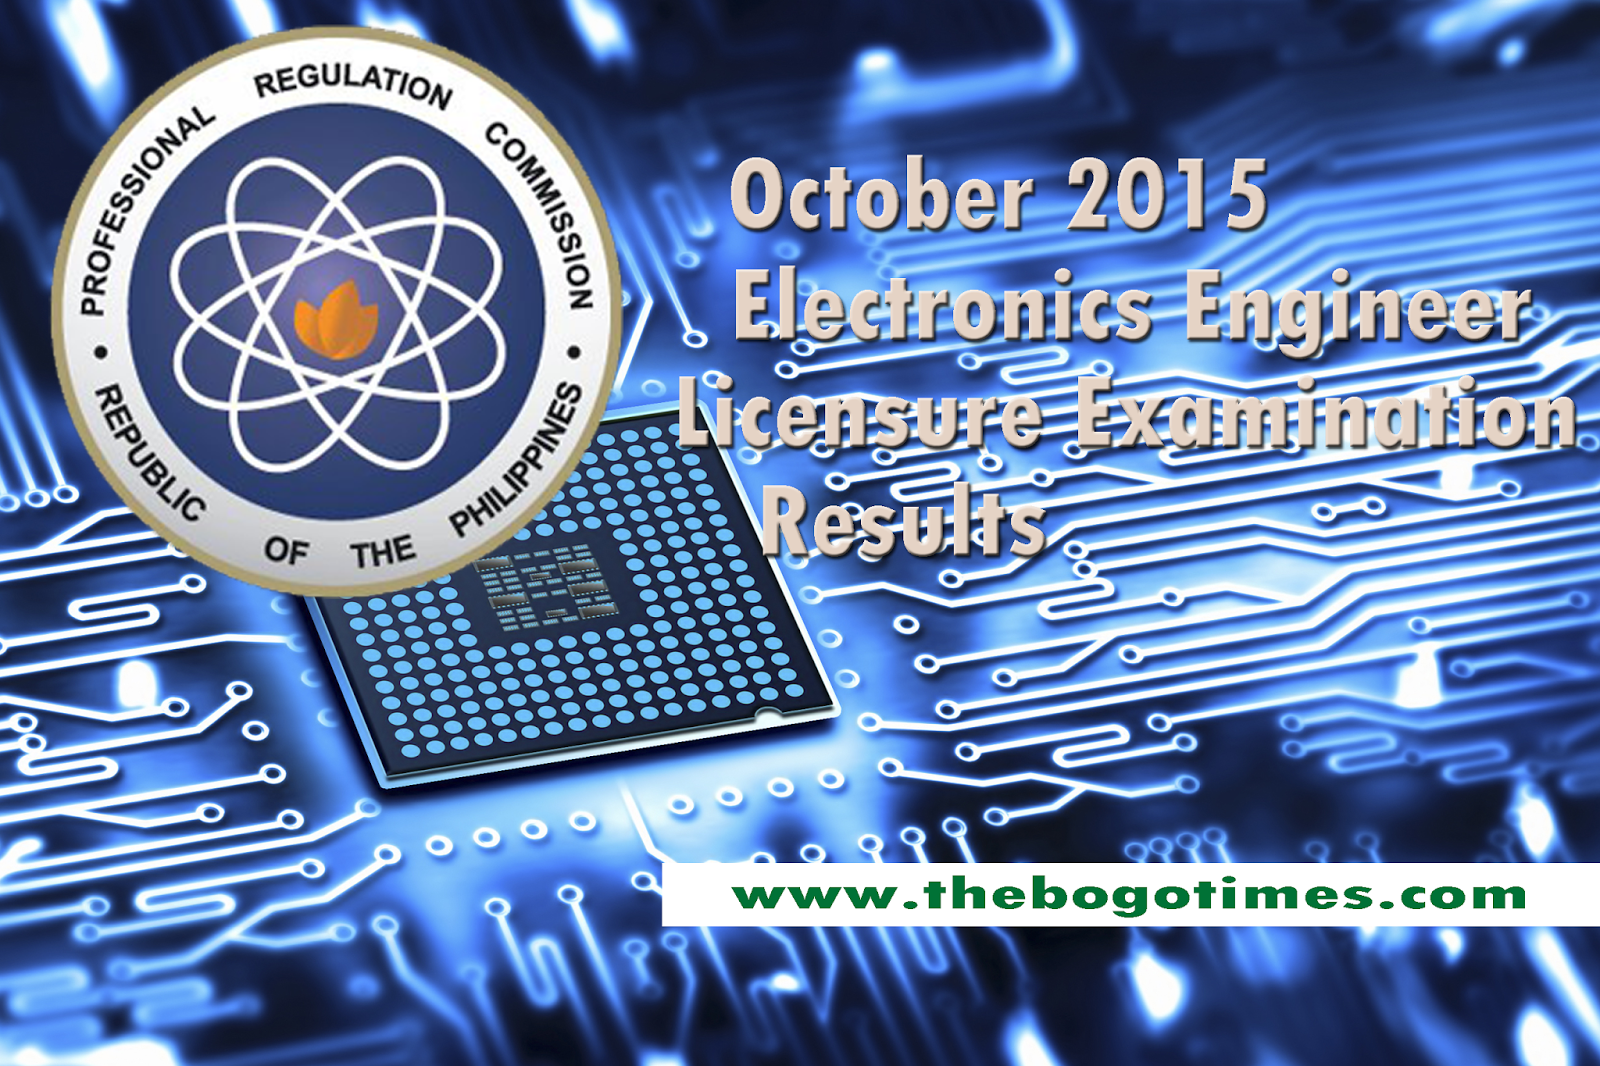 October 2015 Electronics Engineer Licensure Examination Results Page 1 (A-M)